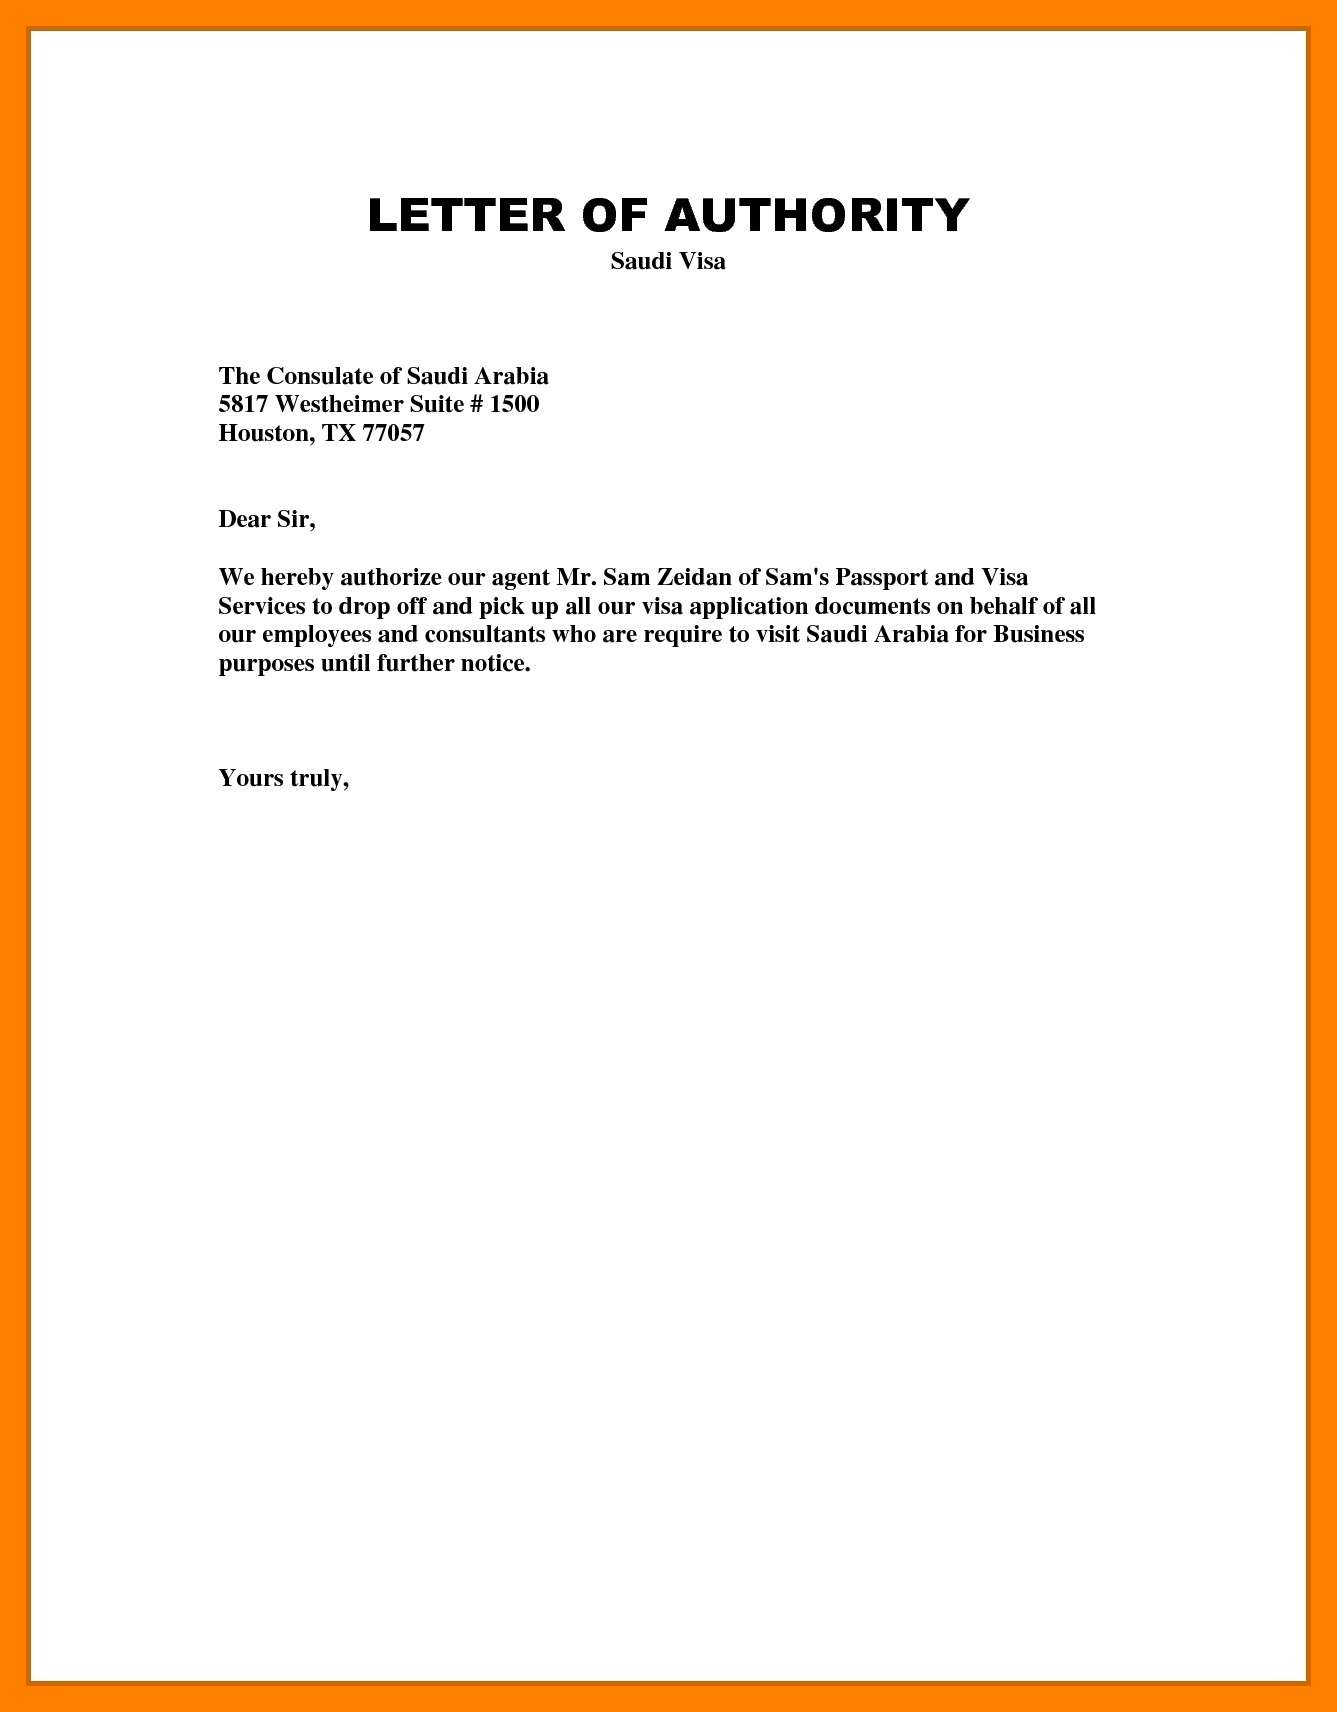 Authorization letter its all about how to write an authorization there is proper format to write this letter the format can vary from purpose to purpose but important things remain the same expocarfo Gallery